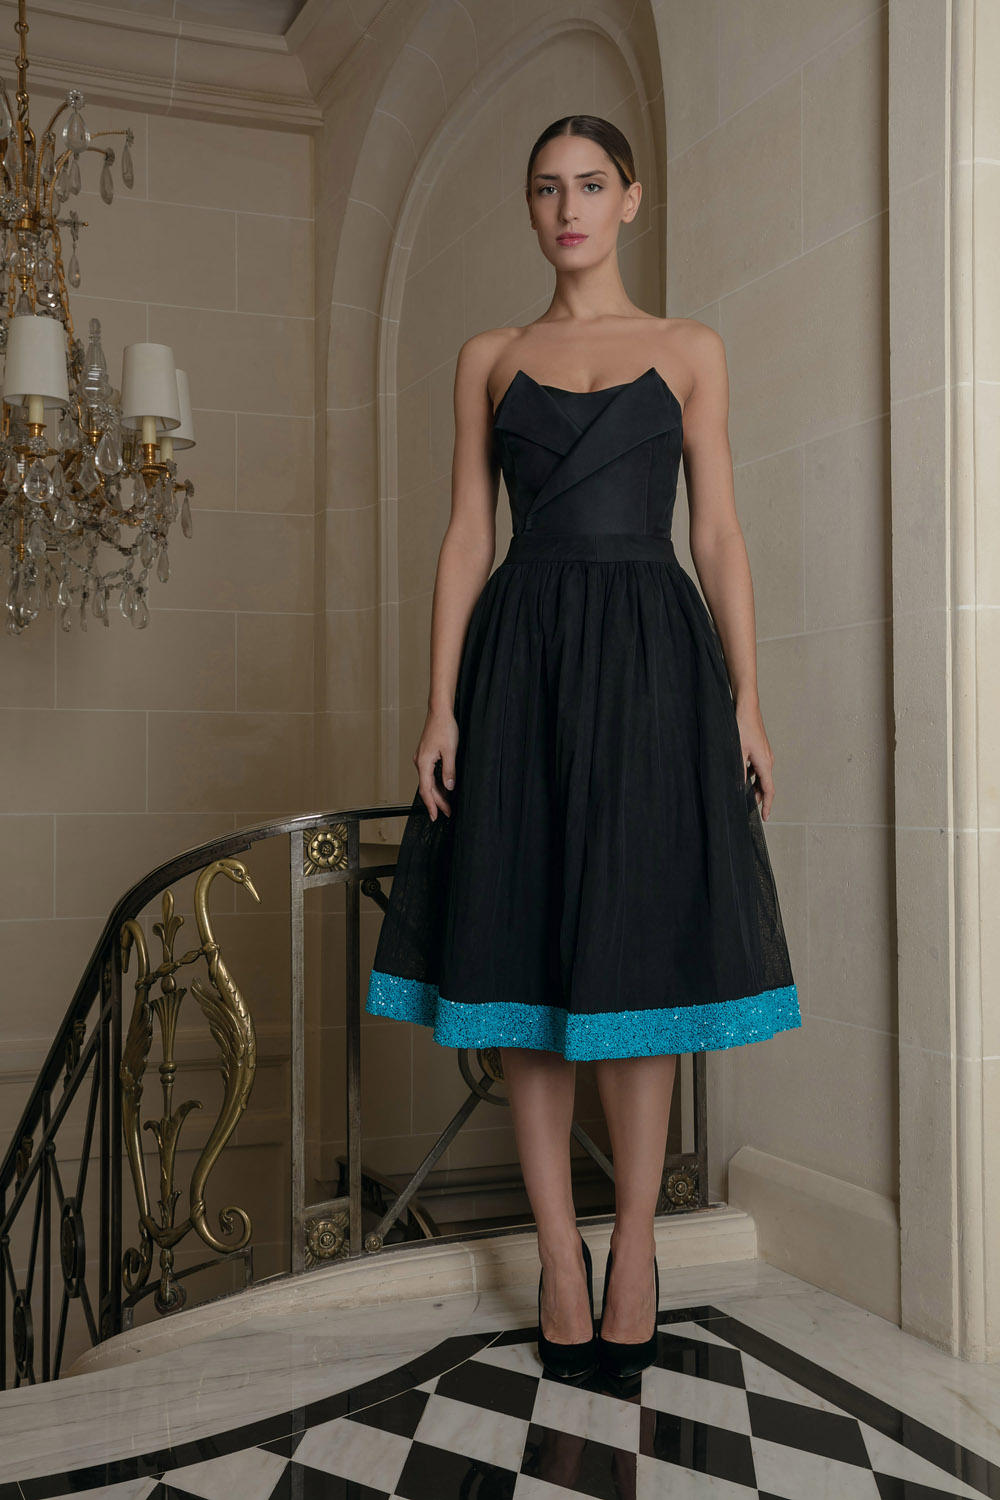 high fashion choose best official Black midi skirt with turquoise embellishments